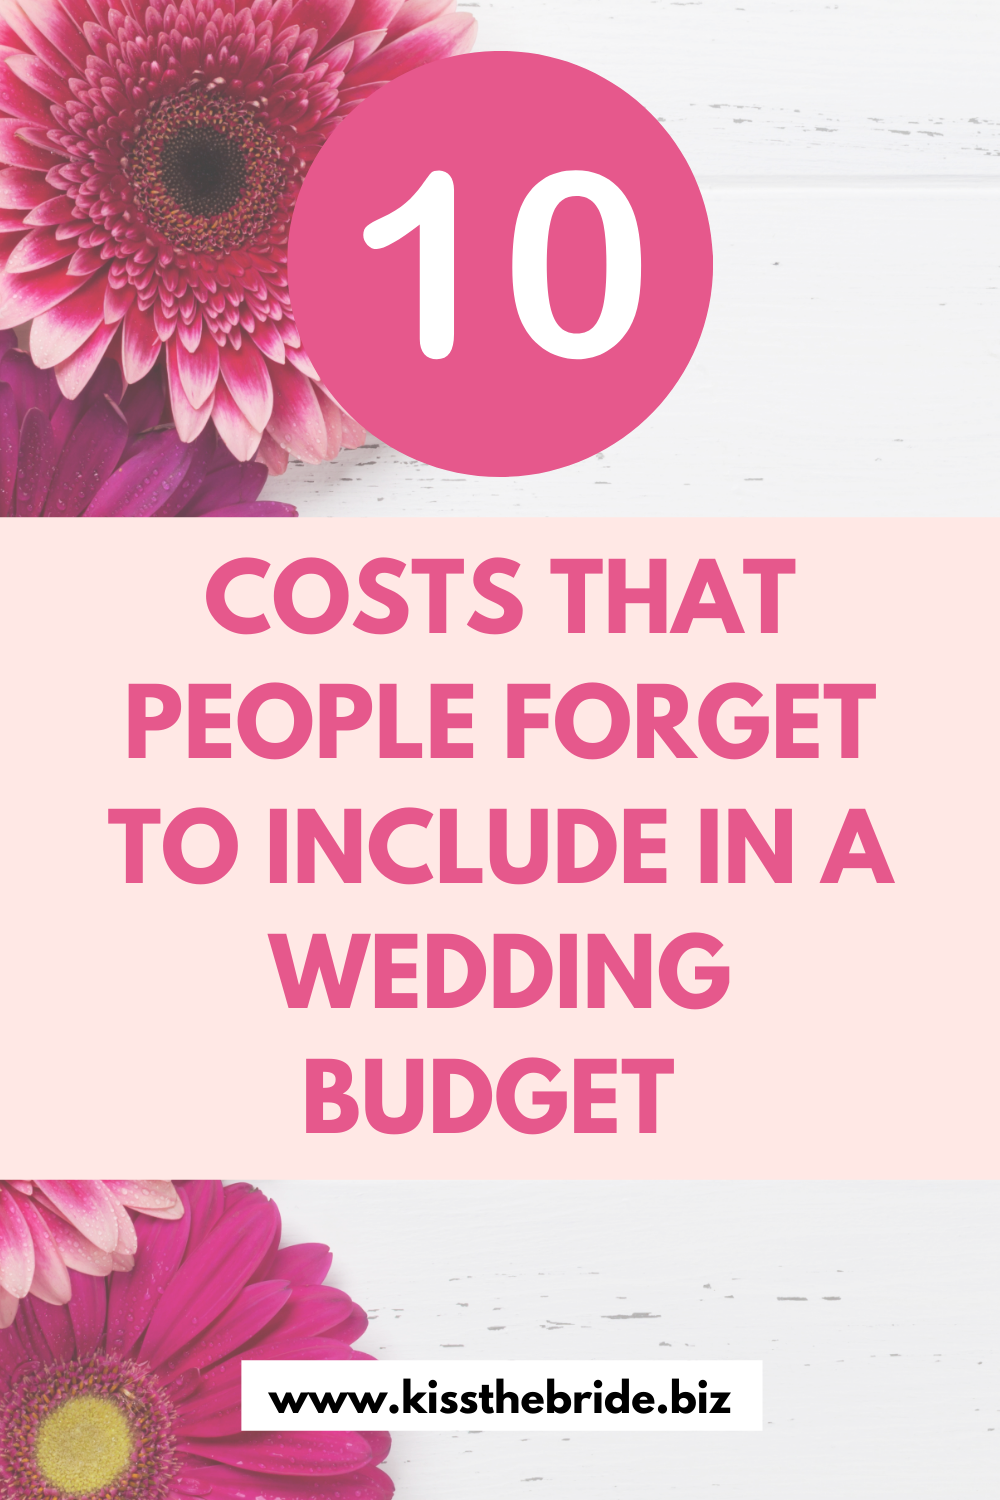 Wedding costs to put in a budget